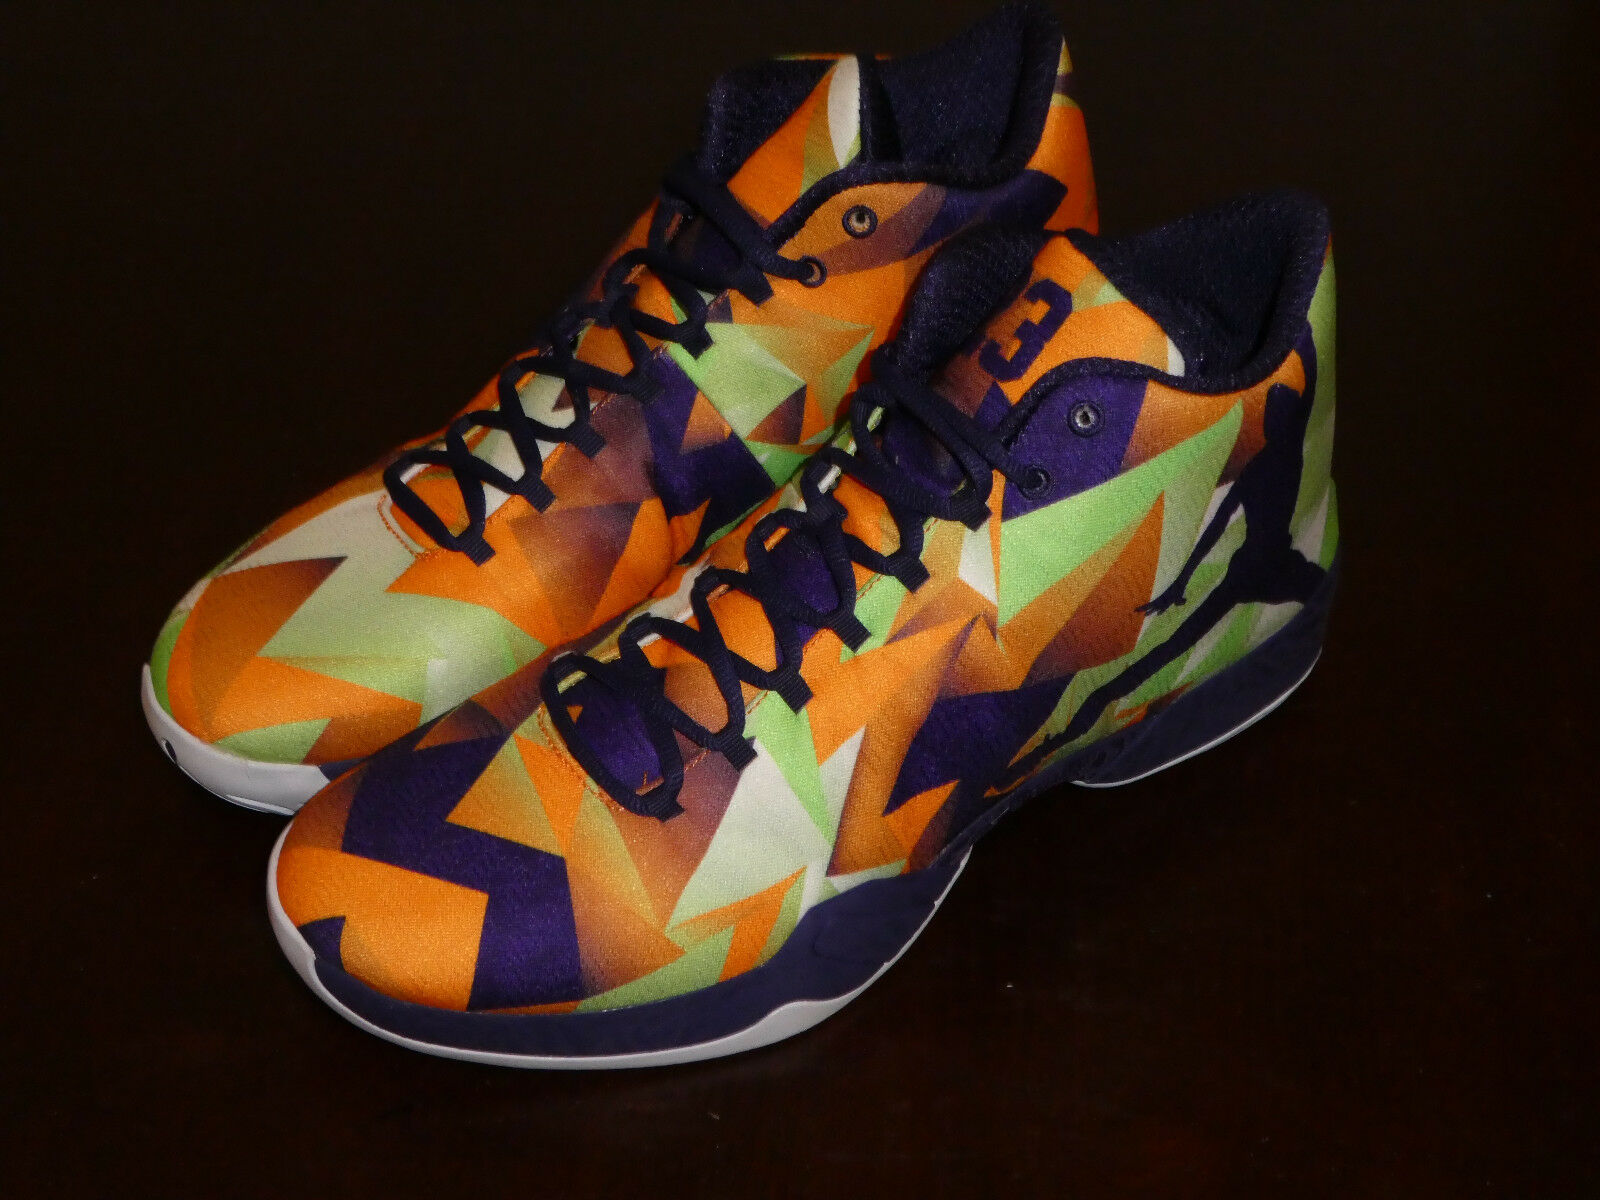 d04603c166a3 Nike Air Jordan Xx9 Hare Basketball Shoes Men s Size 14 Multi 695515 ...